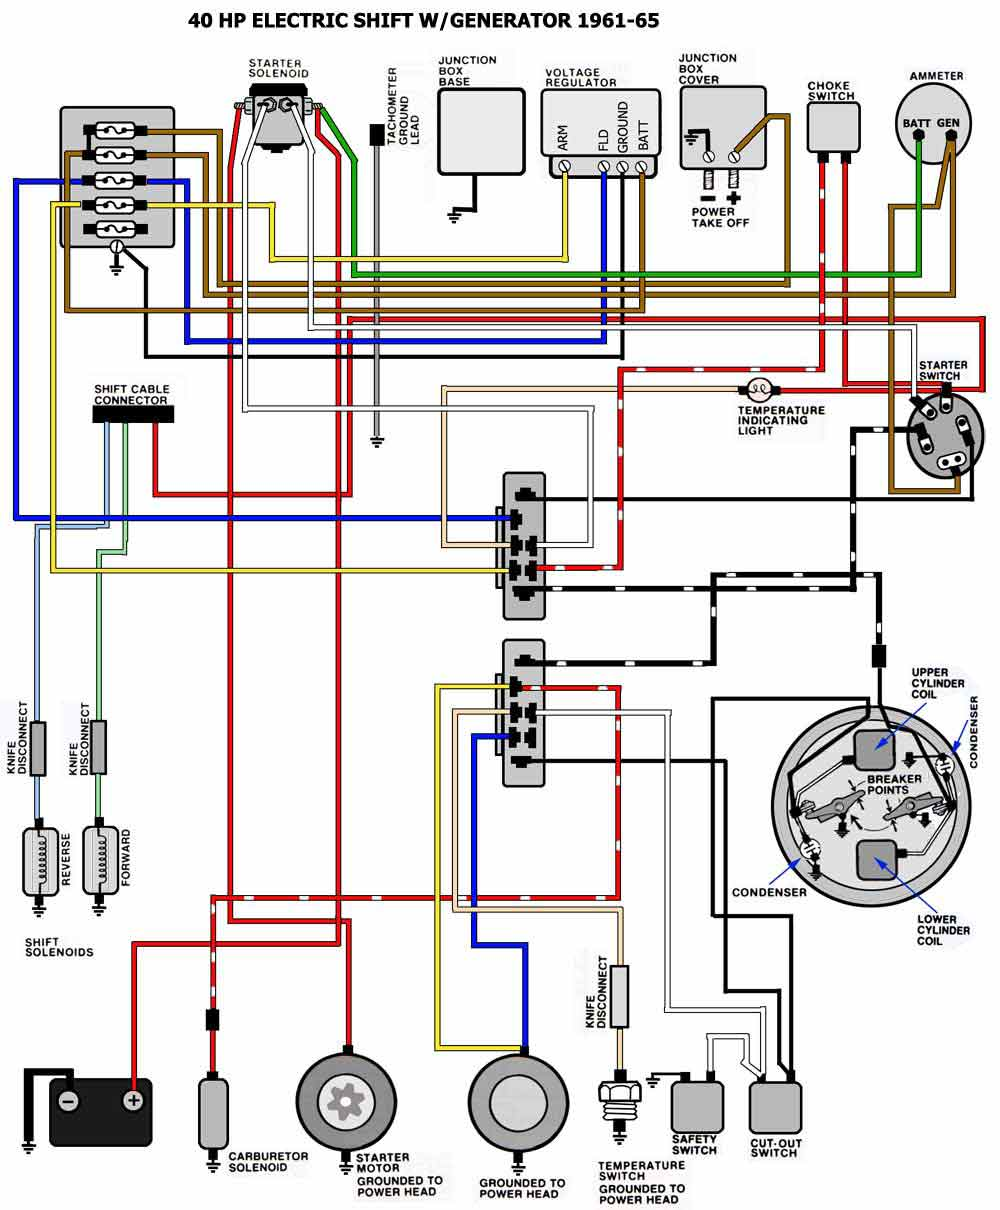 hight resolution of mercury 40hp ignition switch wiring diagram wiring diagram portal mercury 50 hp wiring mercury 40 hp wiring